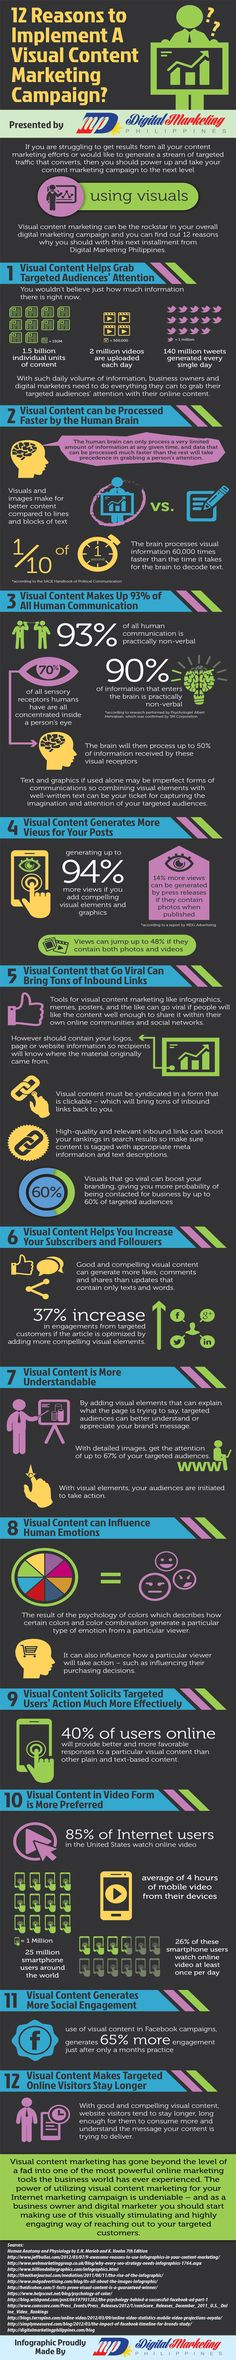 We're not big fans of the design in this #infographic but the data about #VisualContent is very good.